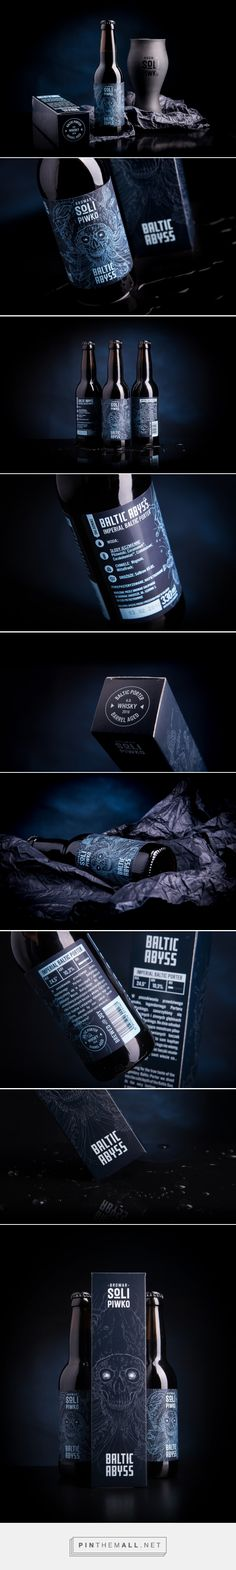 Baltic Abyss - Packaging of the World - Creative Package Design Gallery - http://www.packagingoftheworld.com/2017/06/baltic-abyss.html - created via https://pinthemall.net